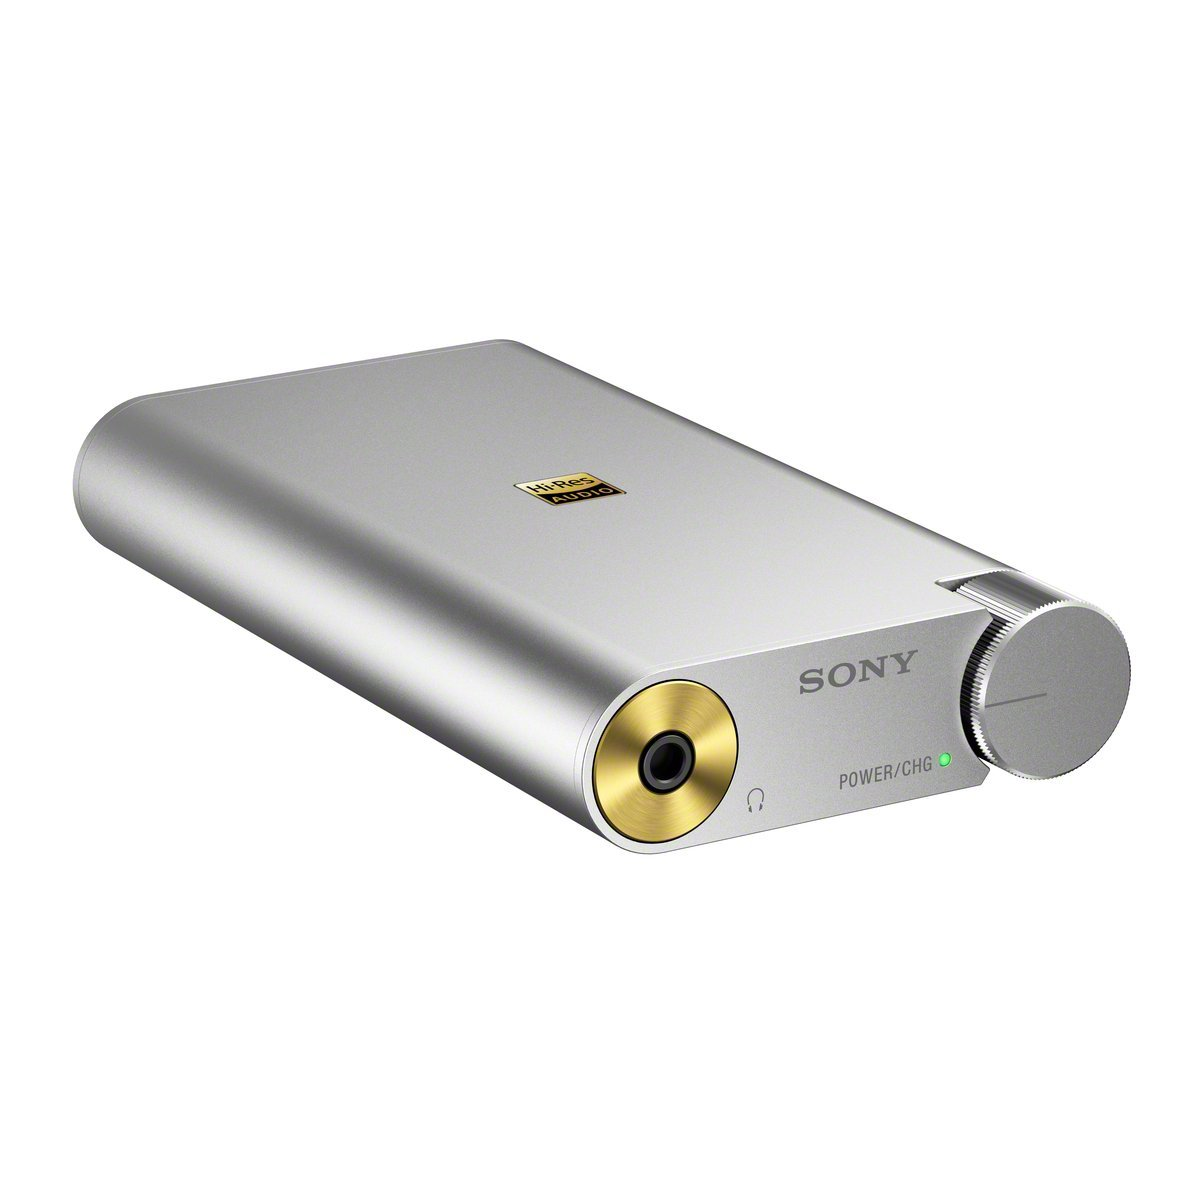 Sony USB Headphone Hi-Res Amplifier